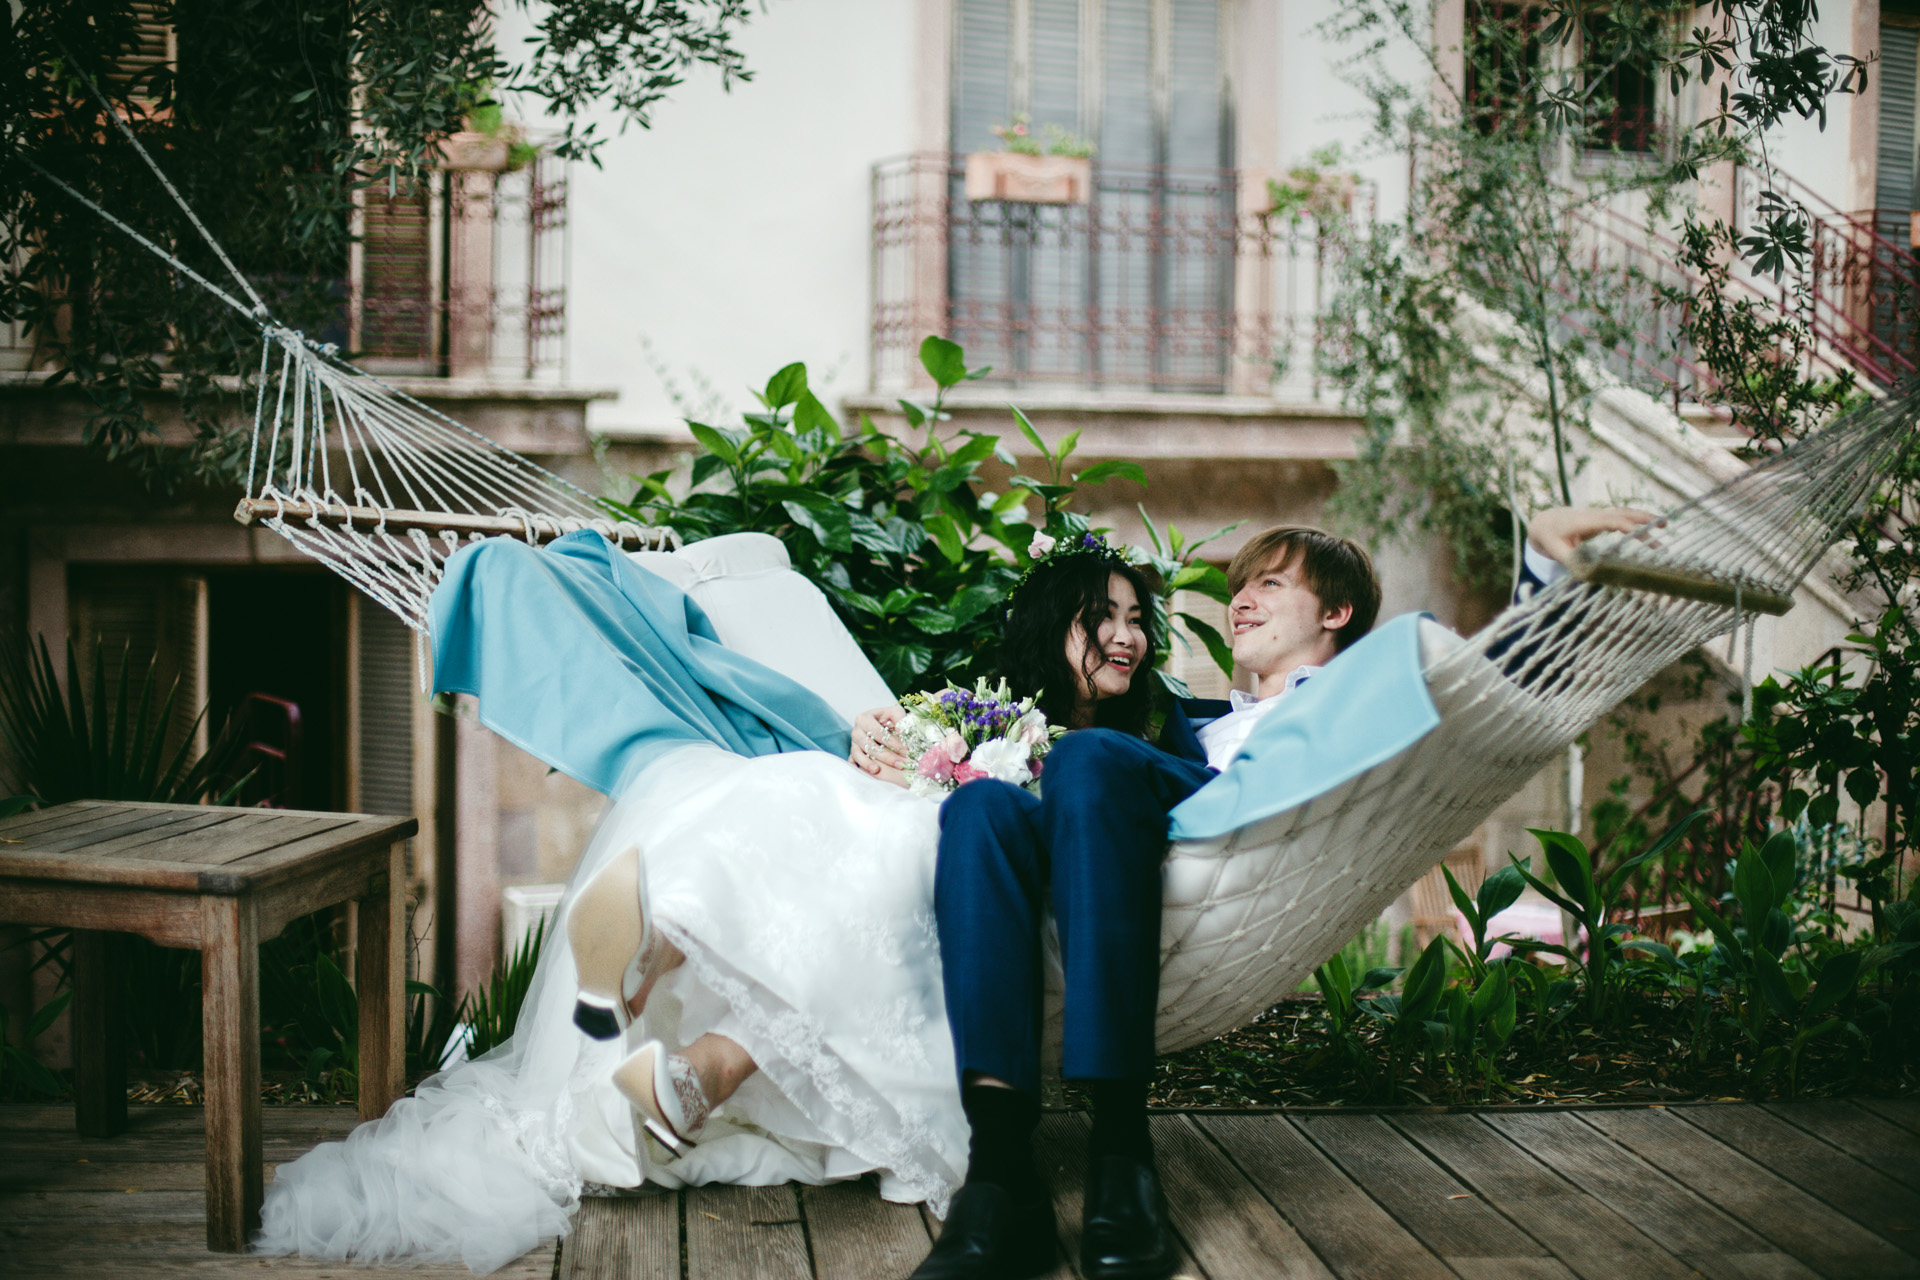 Turkey Elopement Couple Portrait | the couple laid down into a hammock in the garden